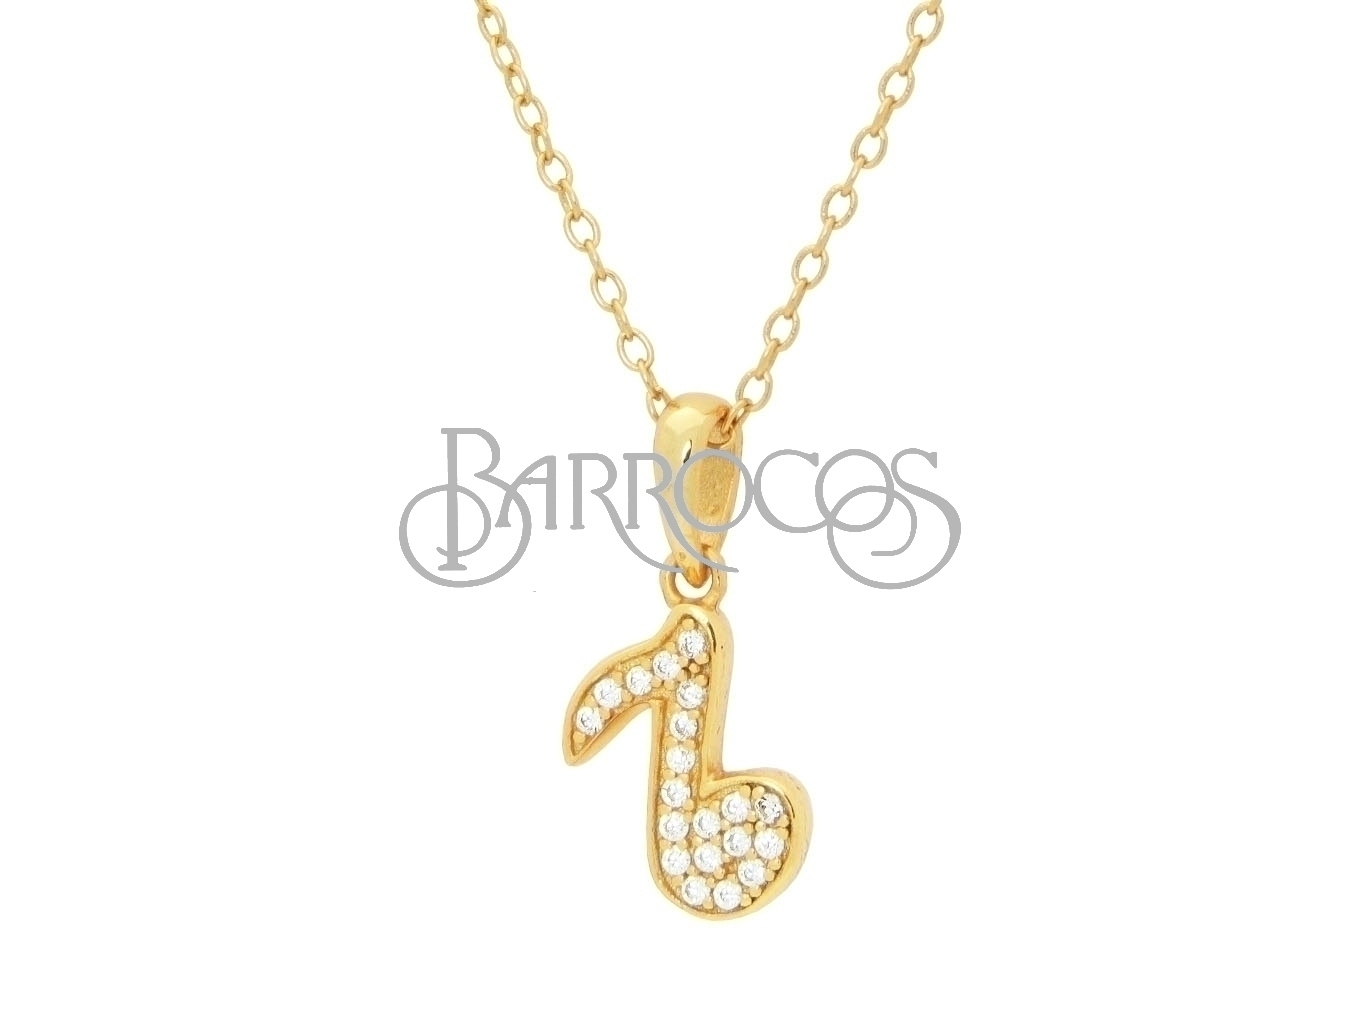 Teens Sparkling Cz Corchea Pendant Necklace in Gold Plated Silver